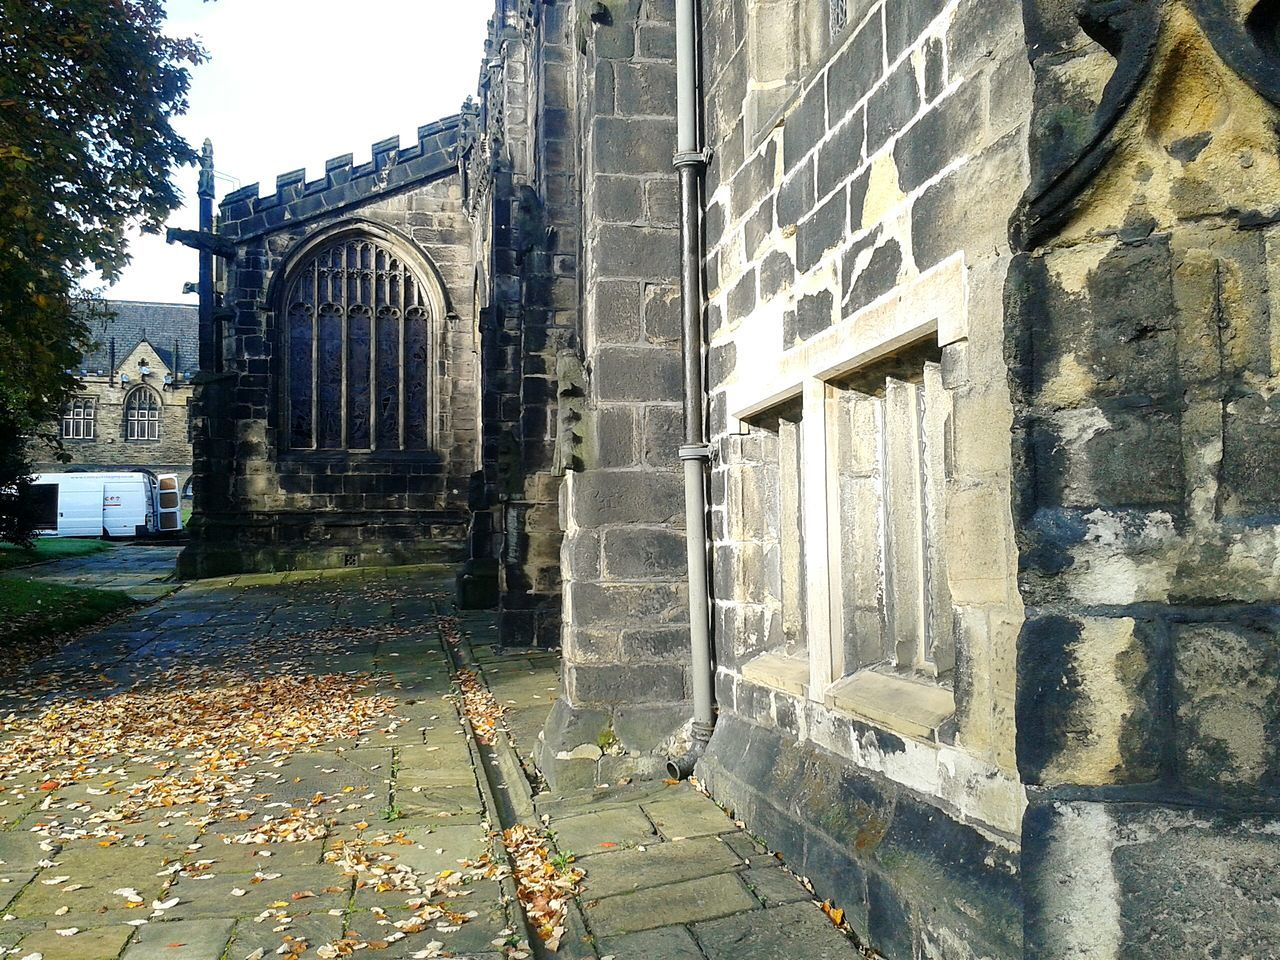 Graveyard Collection Peaceful Place Gravestones Old Churches Medieval Minister Gargoyles Beautiful Stonework Churchyard Autumn Leaves